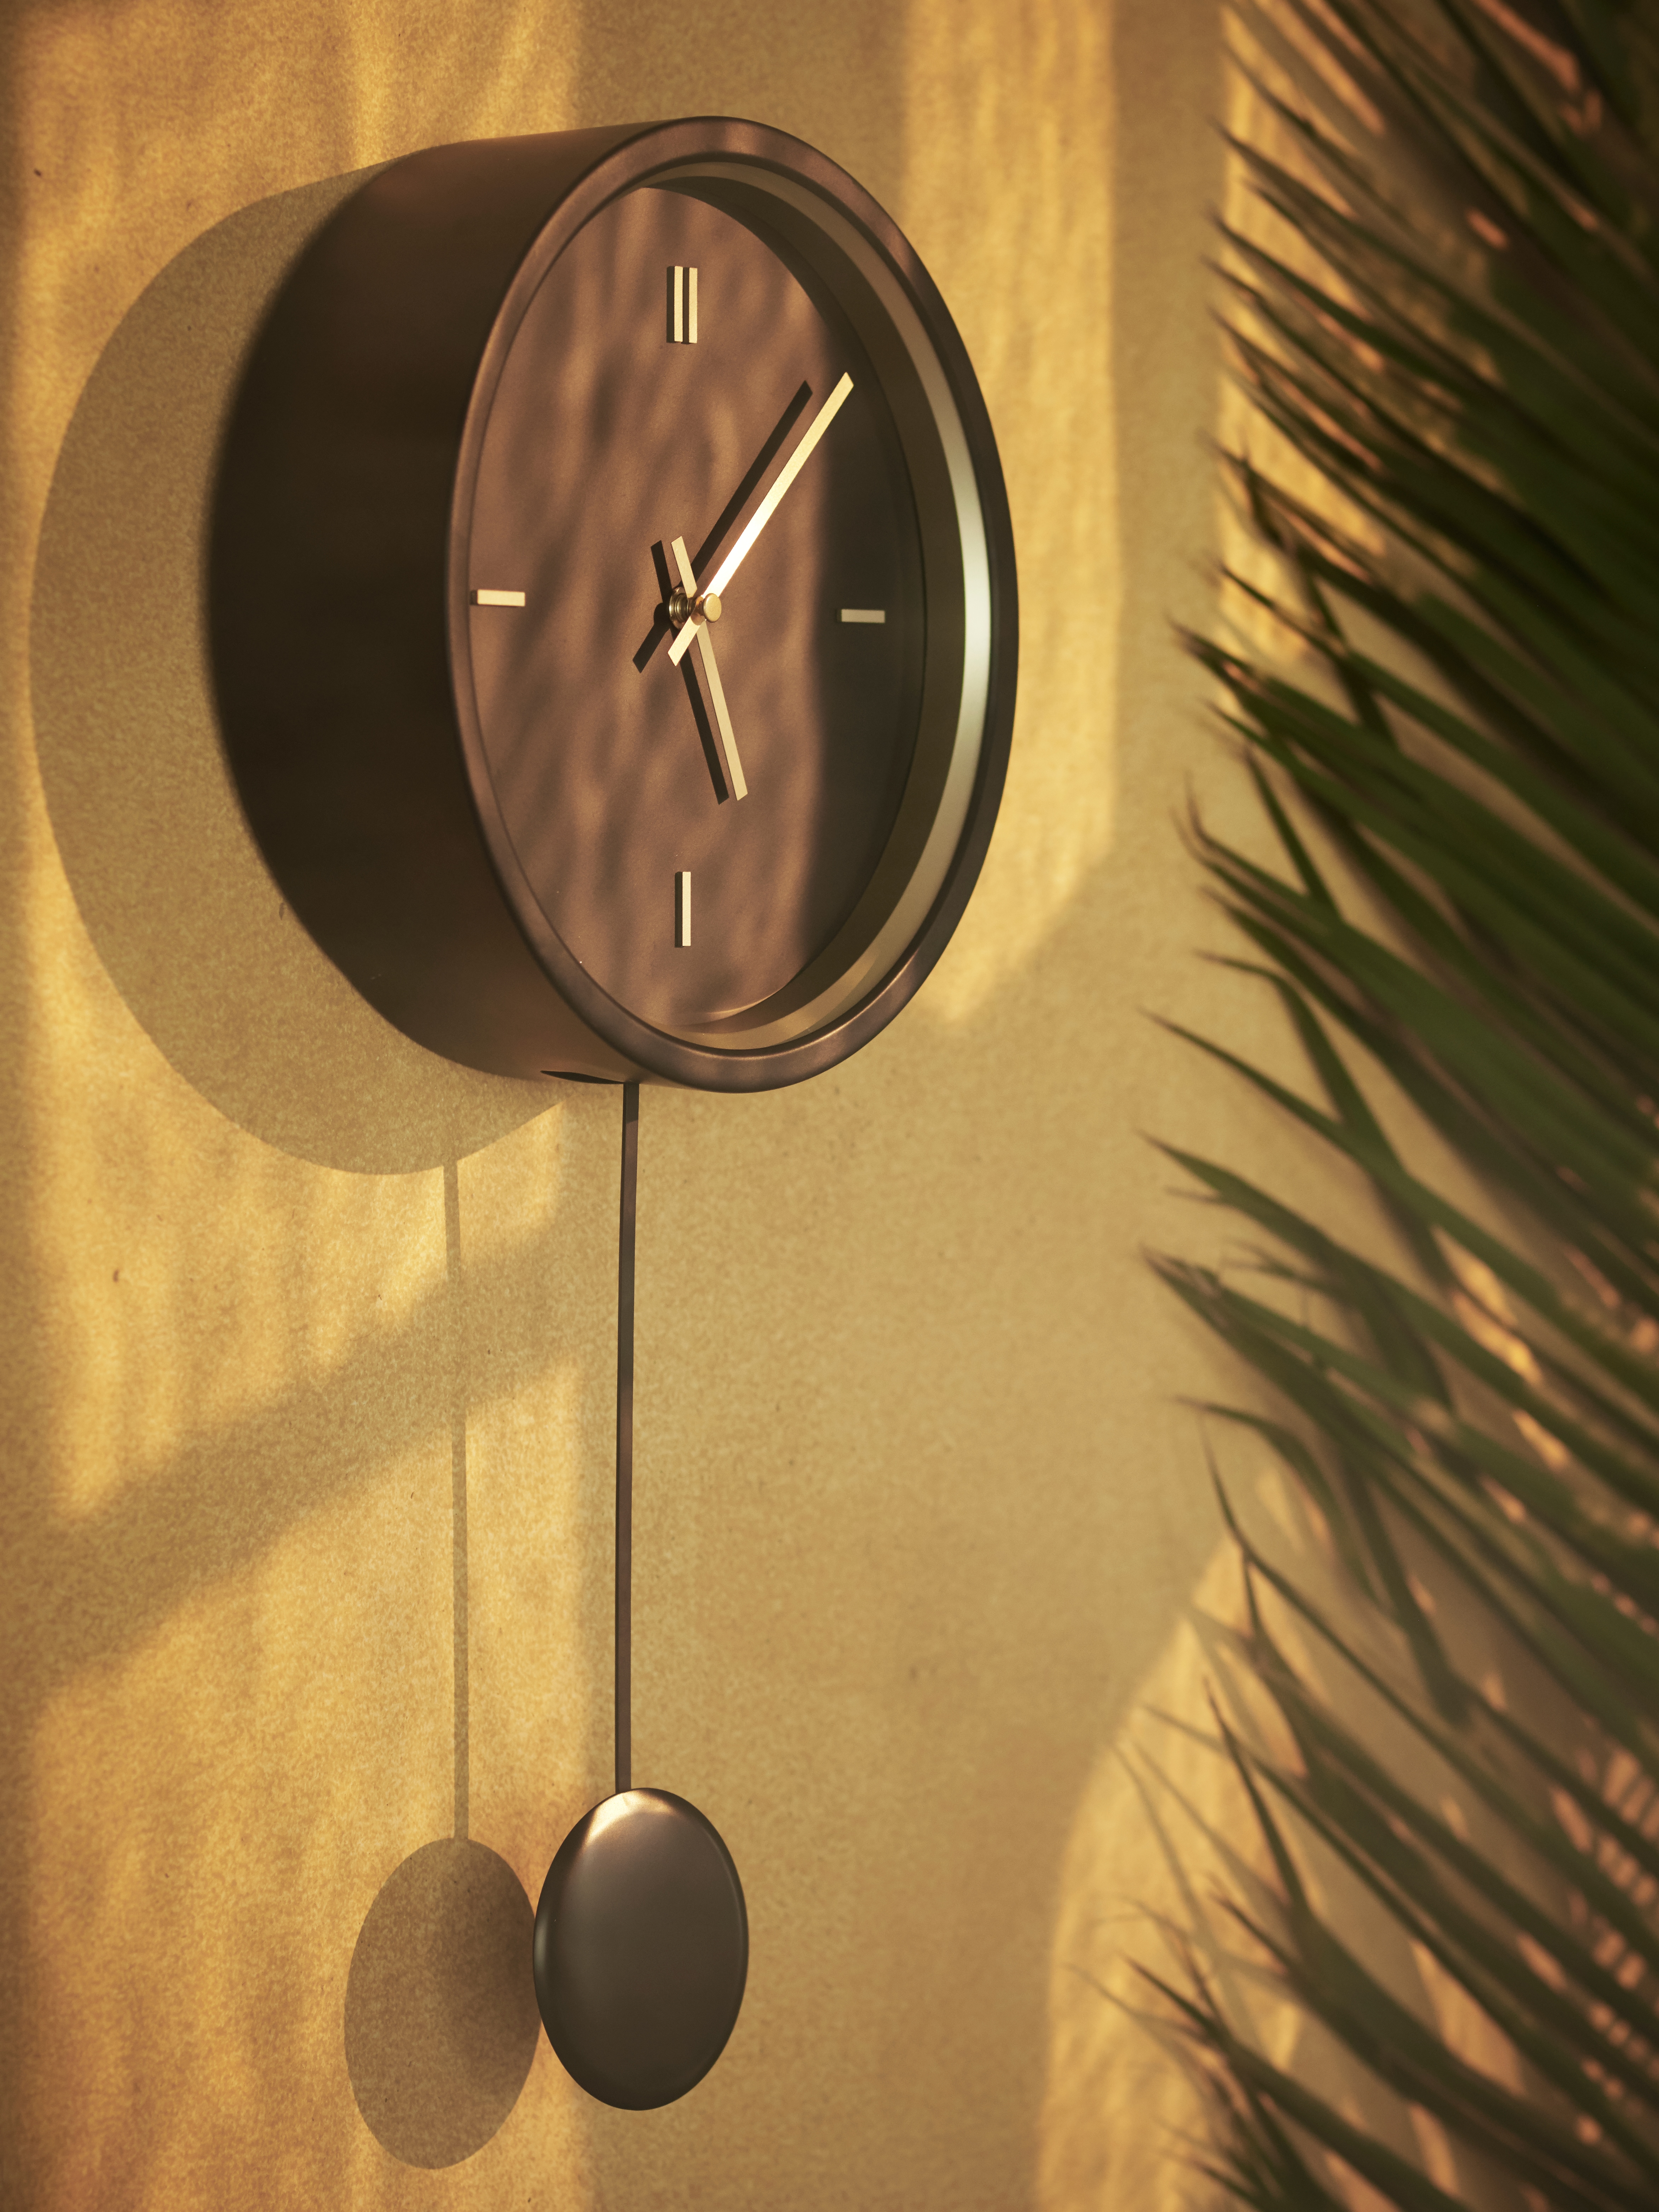 A round-faced, minimalistic black STURSK wall clock with a pendulum and gold details is on a yellow, shaded wall by a plant.